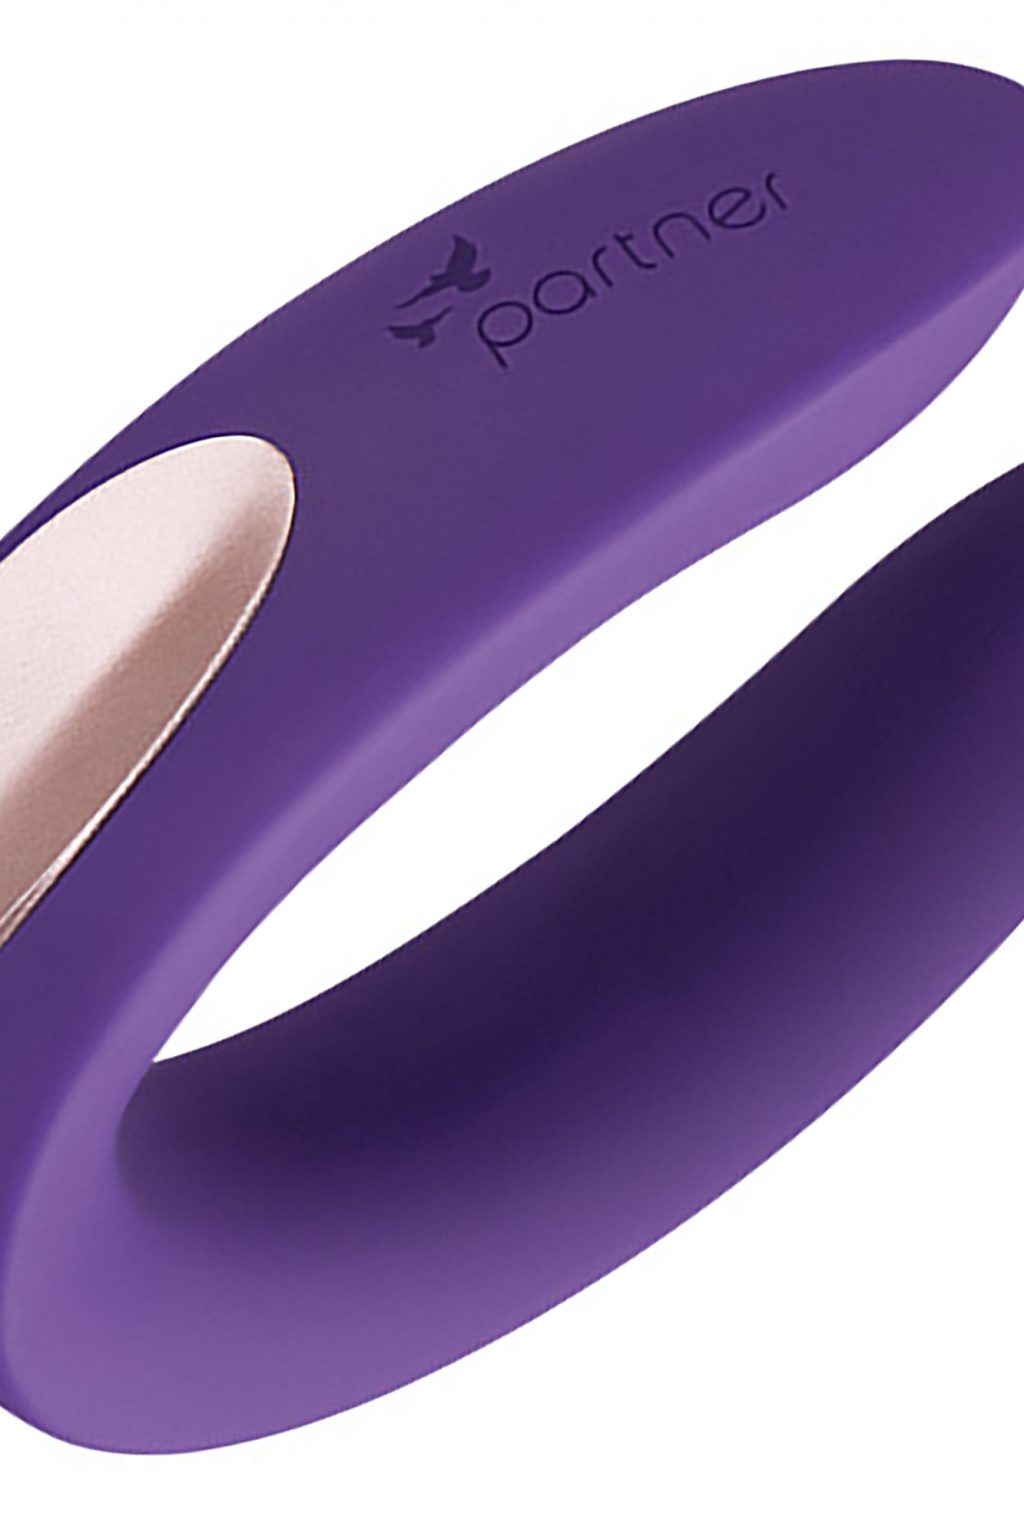 Partner Plus Couples Vibrator